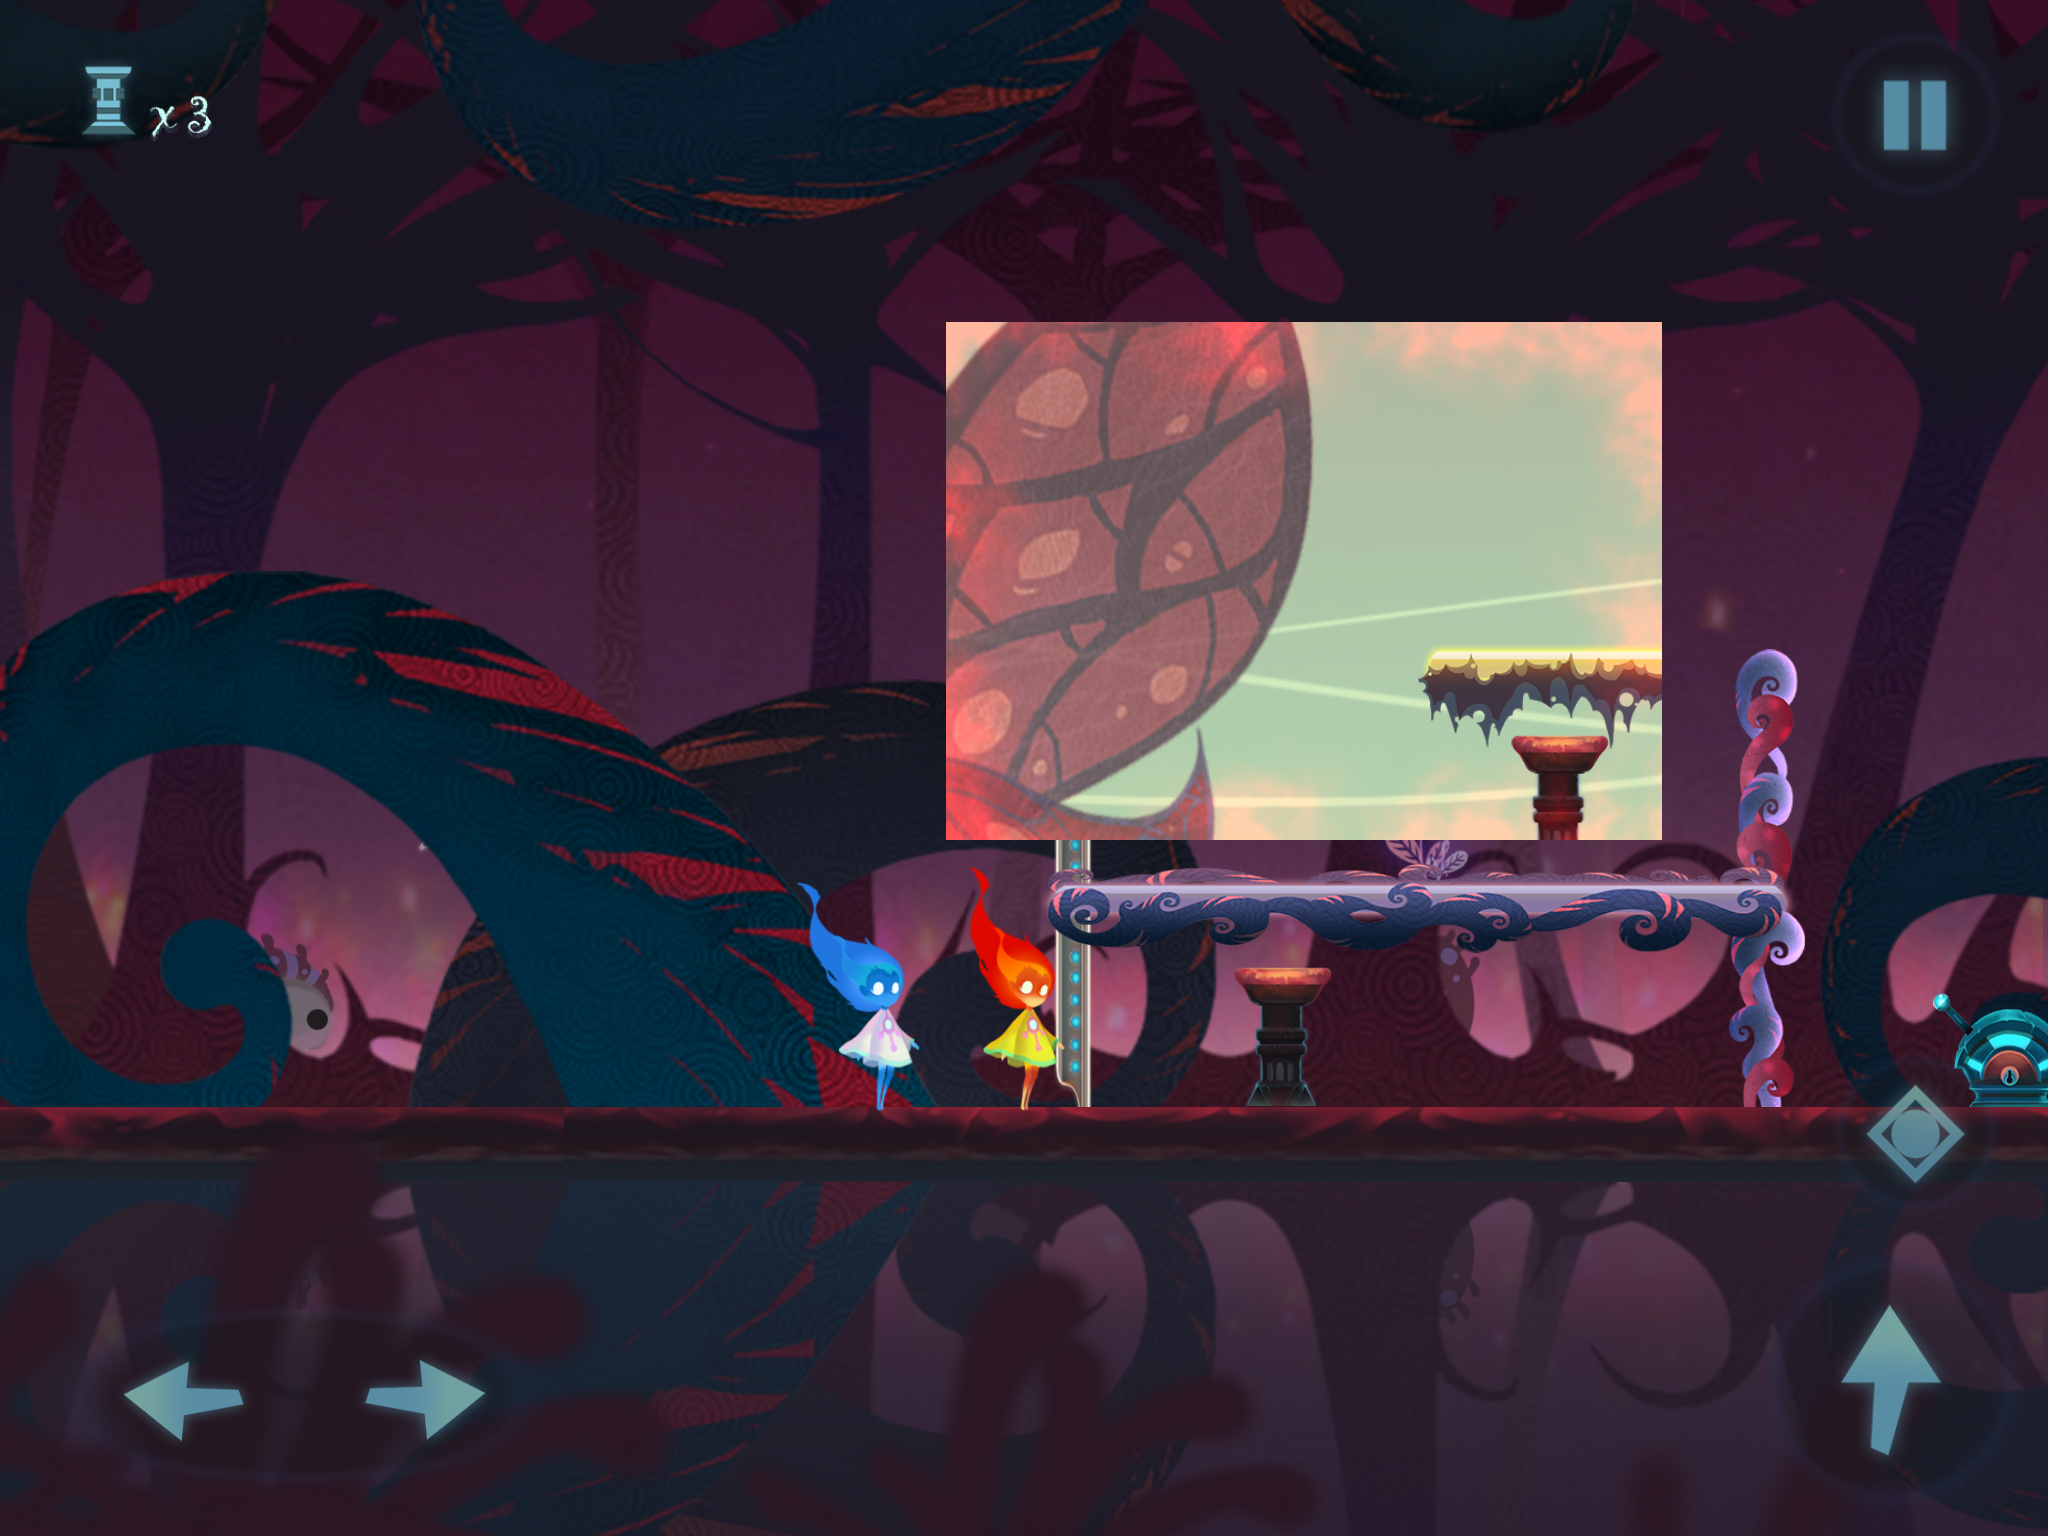 Lit the Torch review - A clever dimension swapping platformer with some good ideas